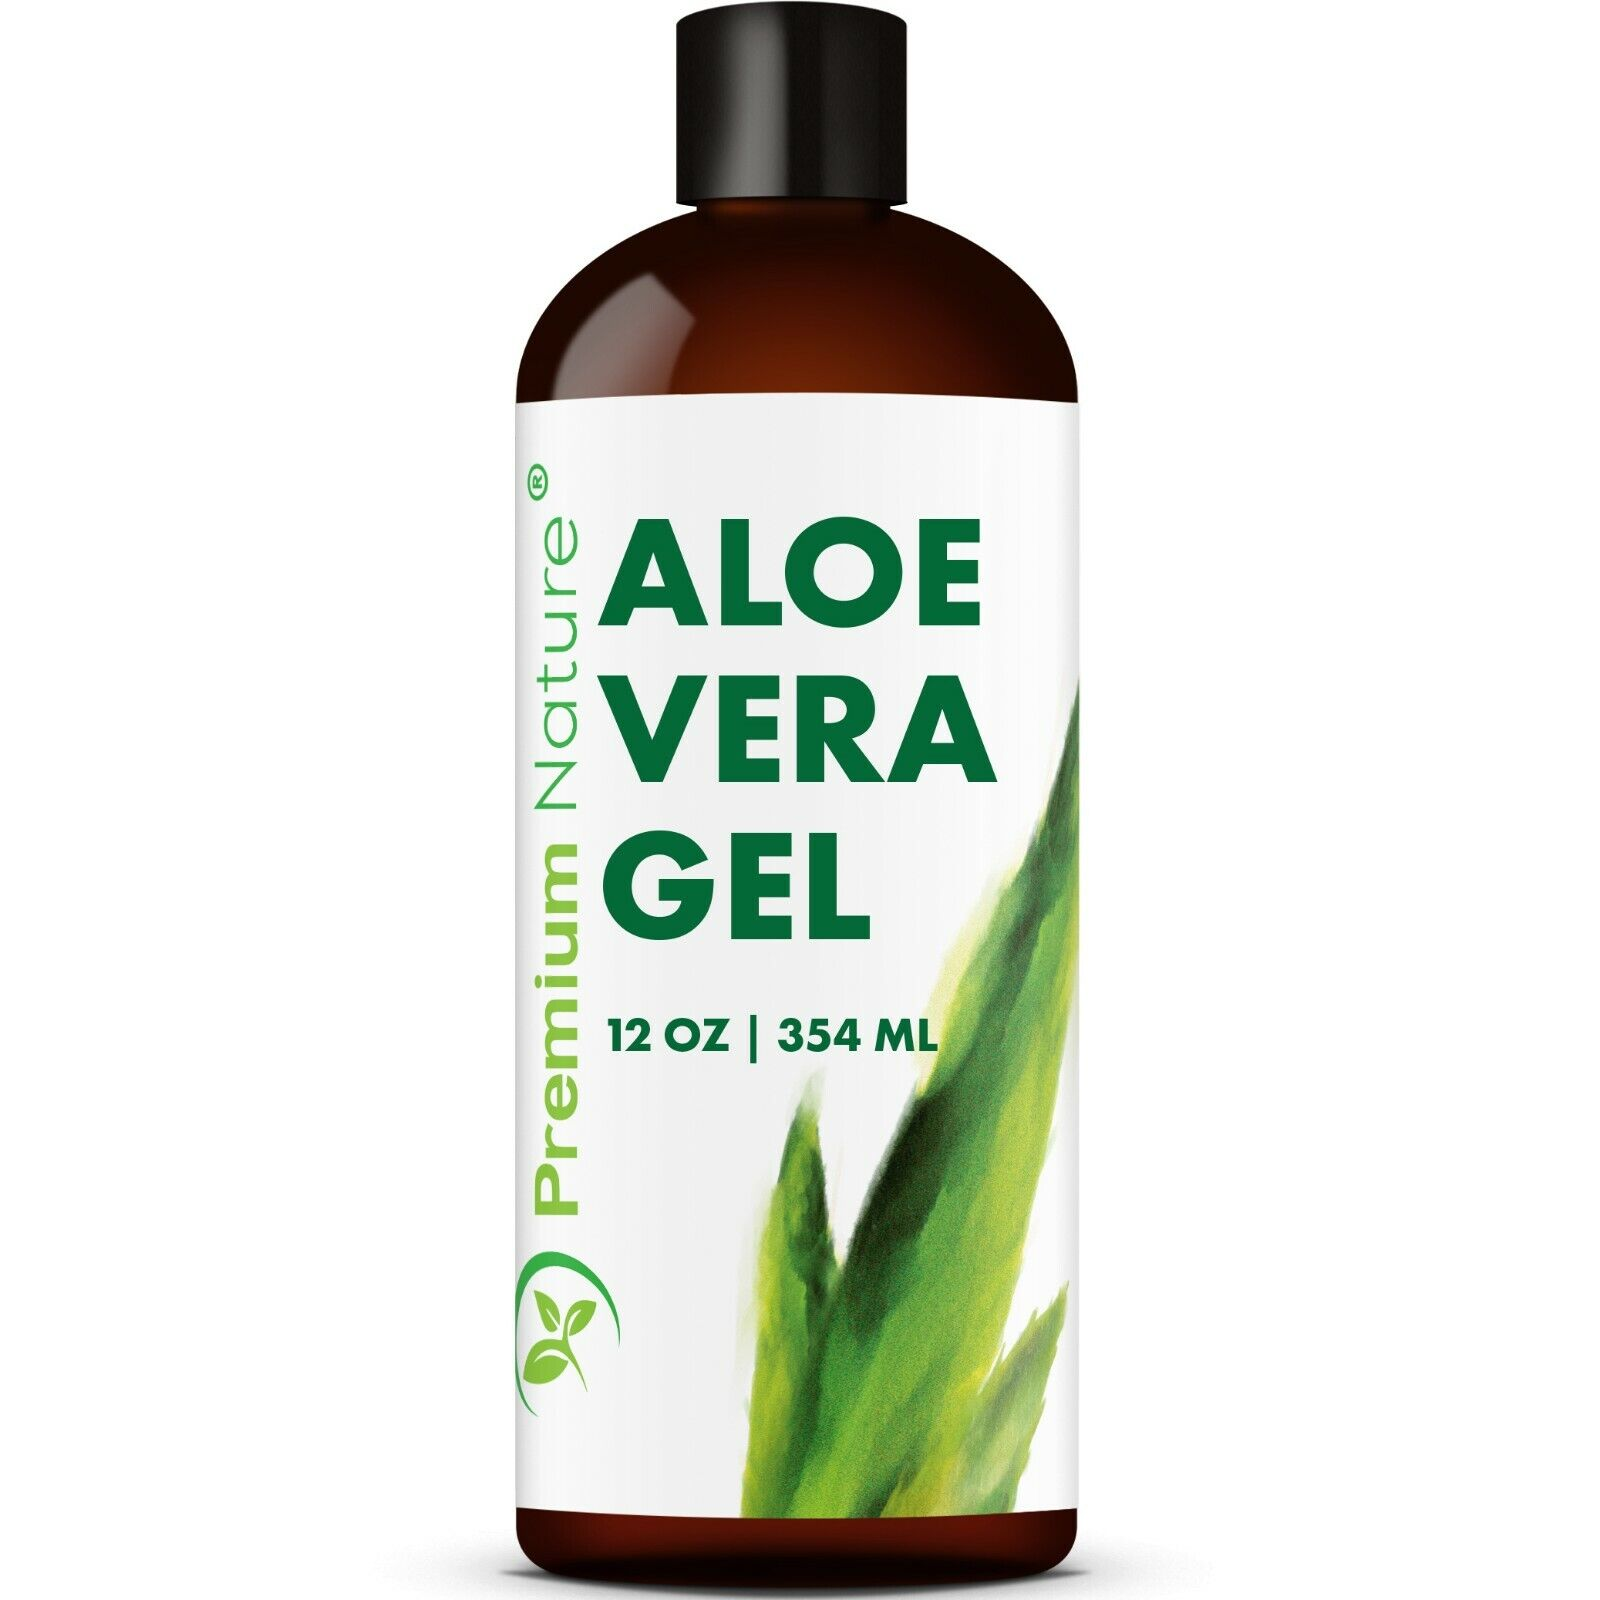 Aloe Vera Gel For Face & Body Moisturizer Skincare 12 oz